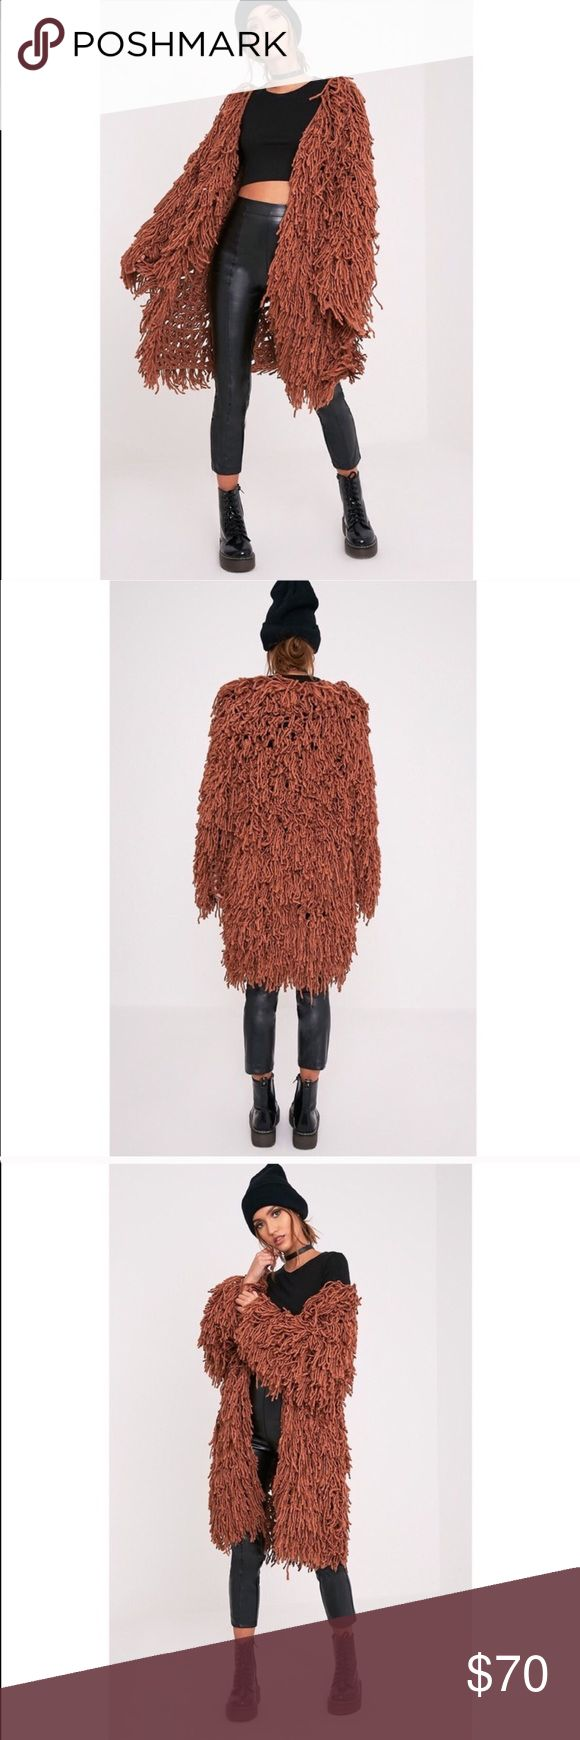 Rusty colored shag coat This extremely shaggy jacket is like new and is a show stopper for sure Jackets & Coats